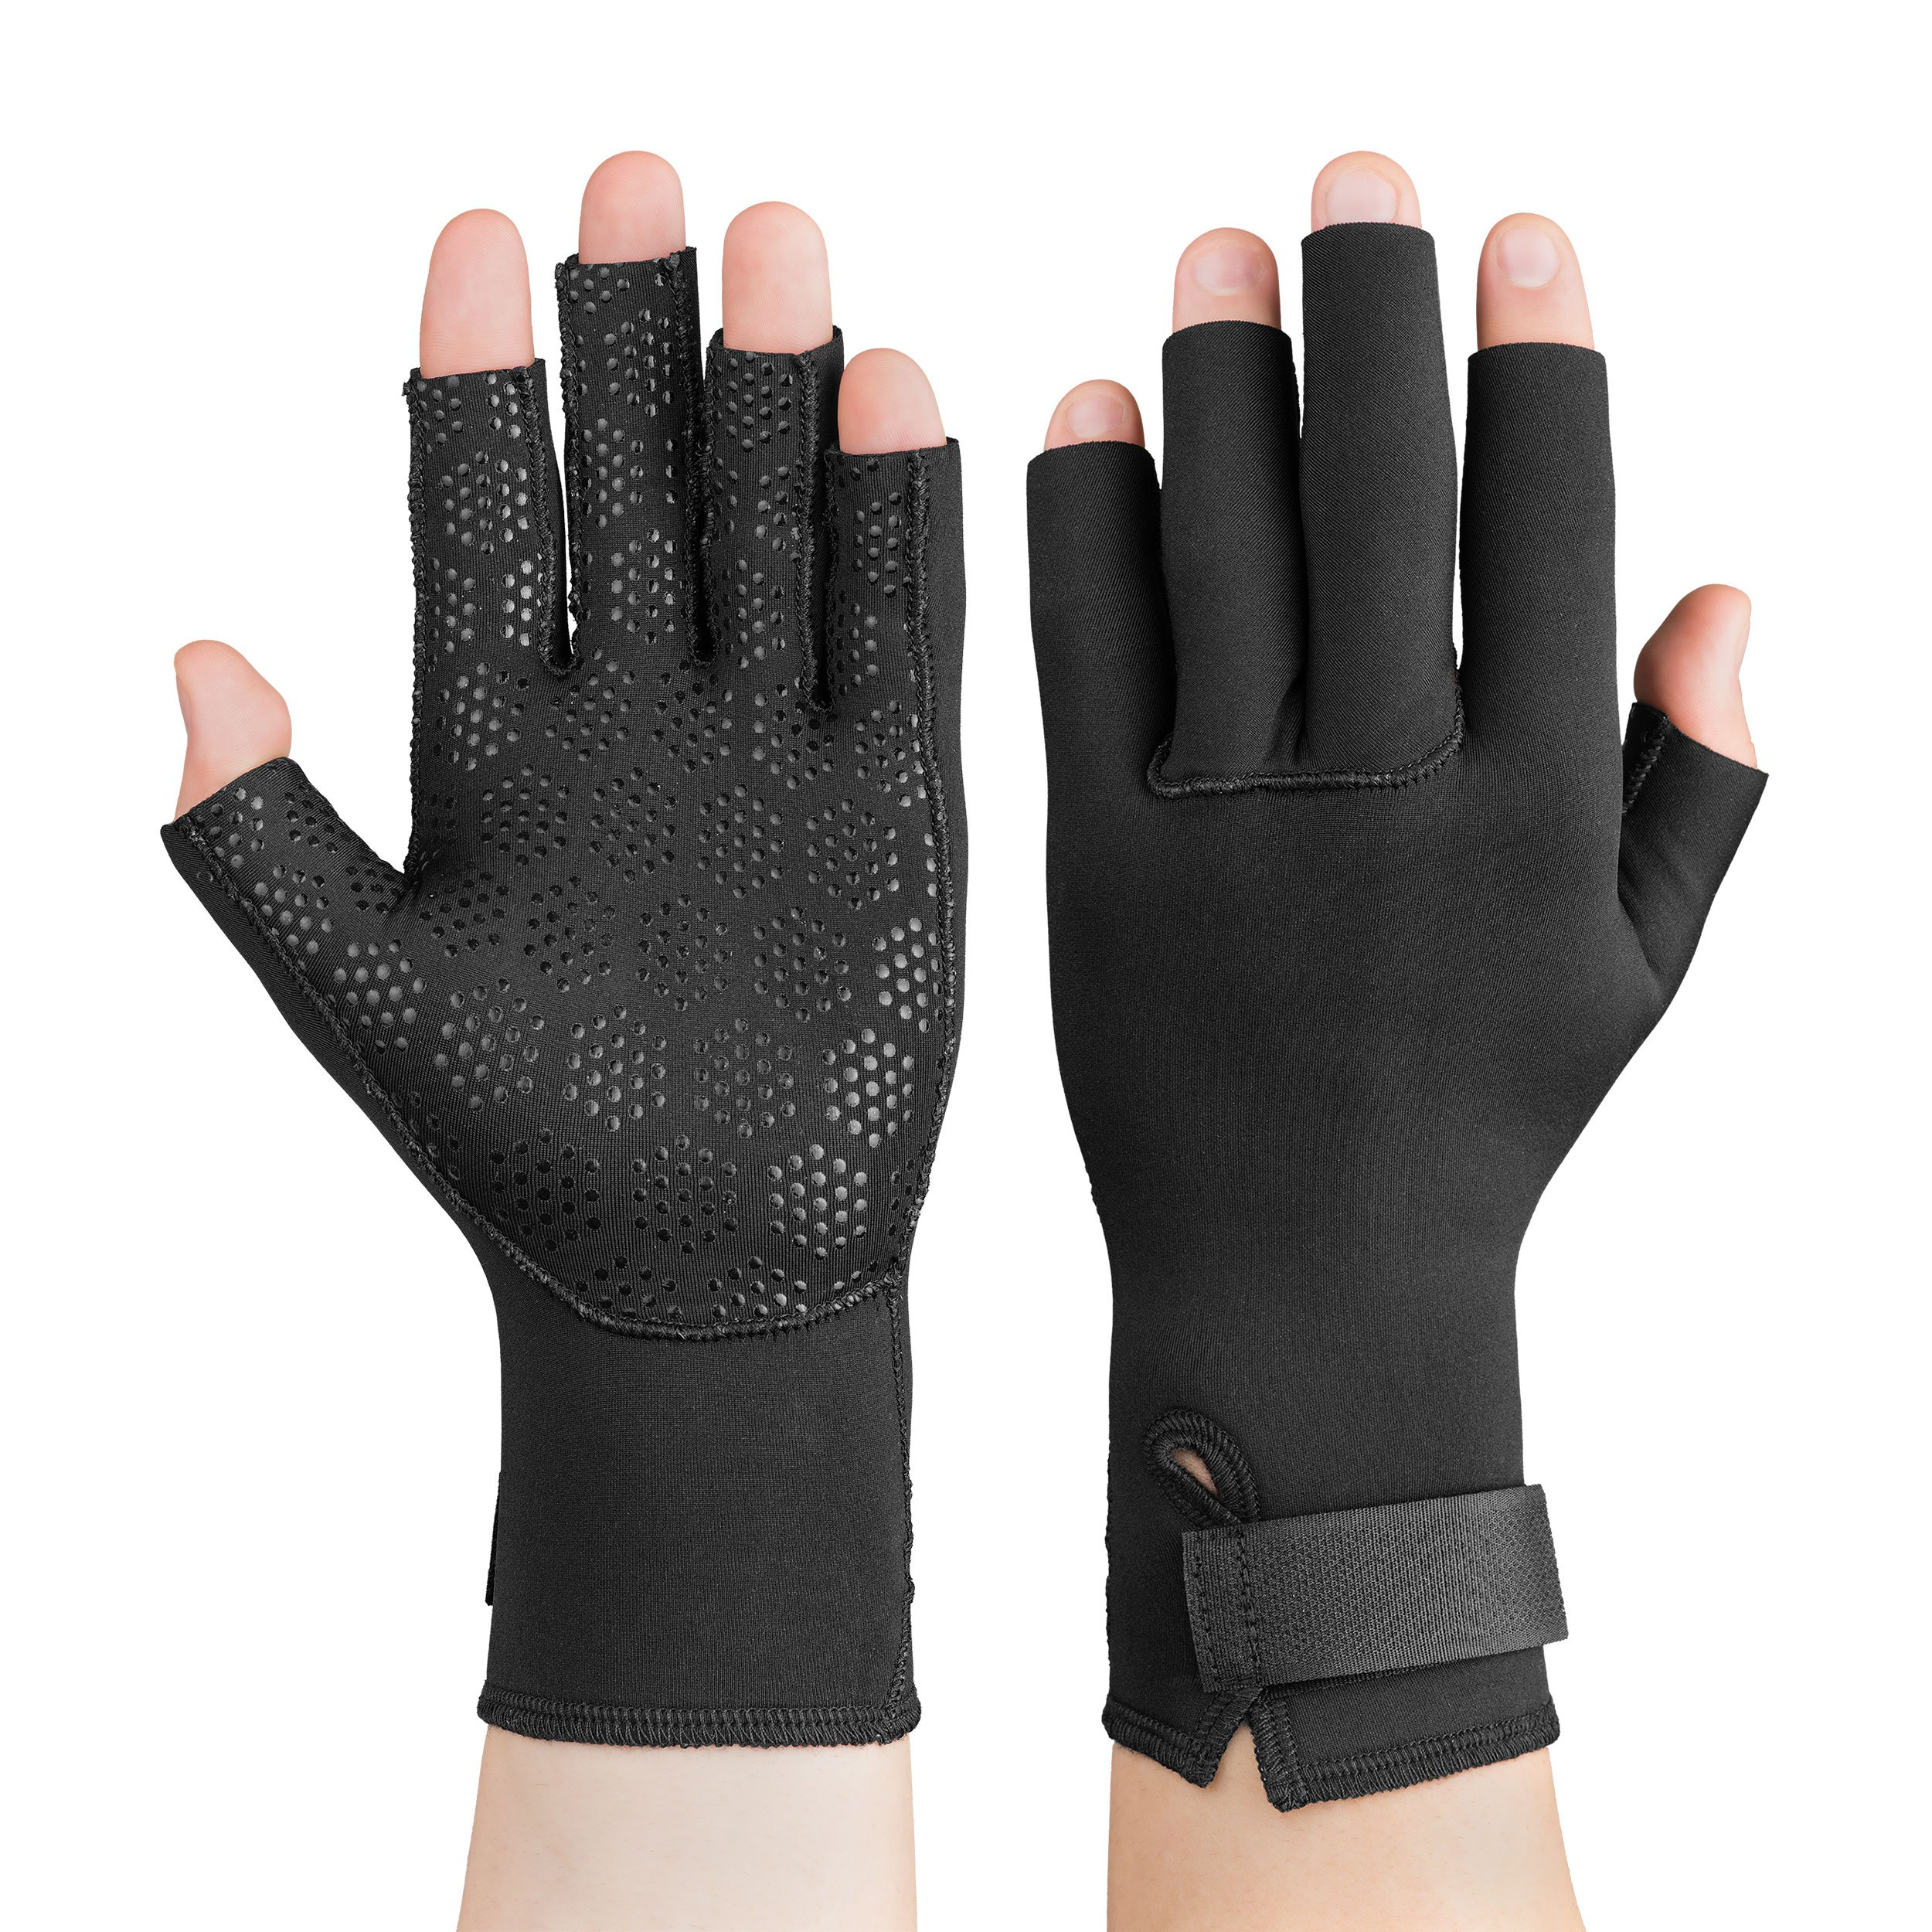 Swede-O Thermal Arthritic Gloves, Pair - Large by Swede-O (Image #1)